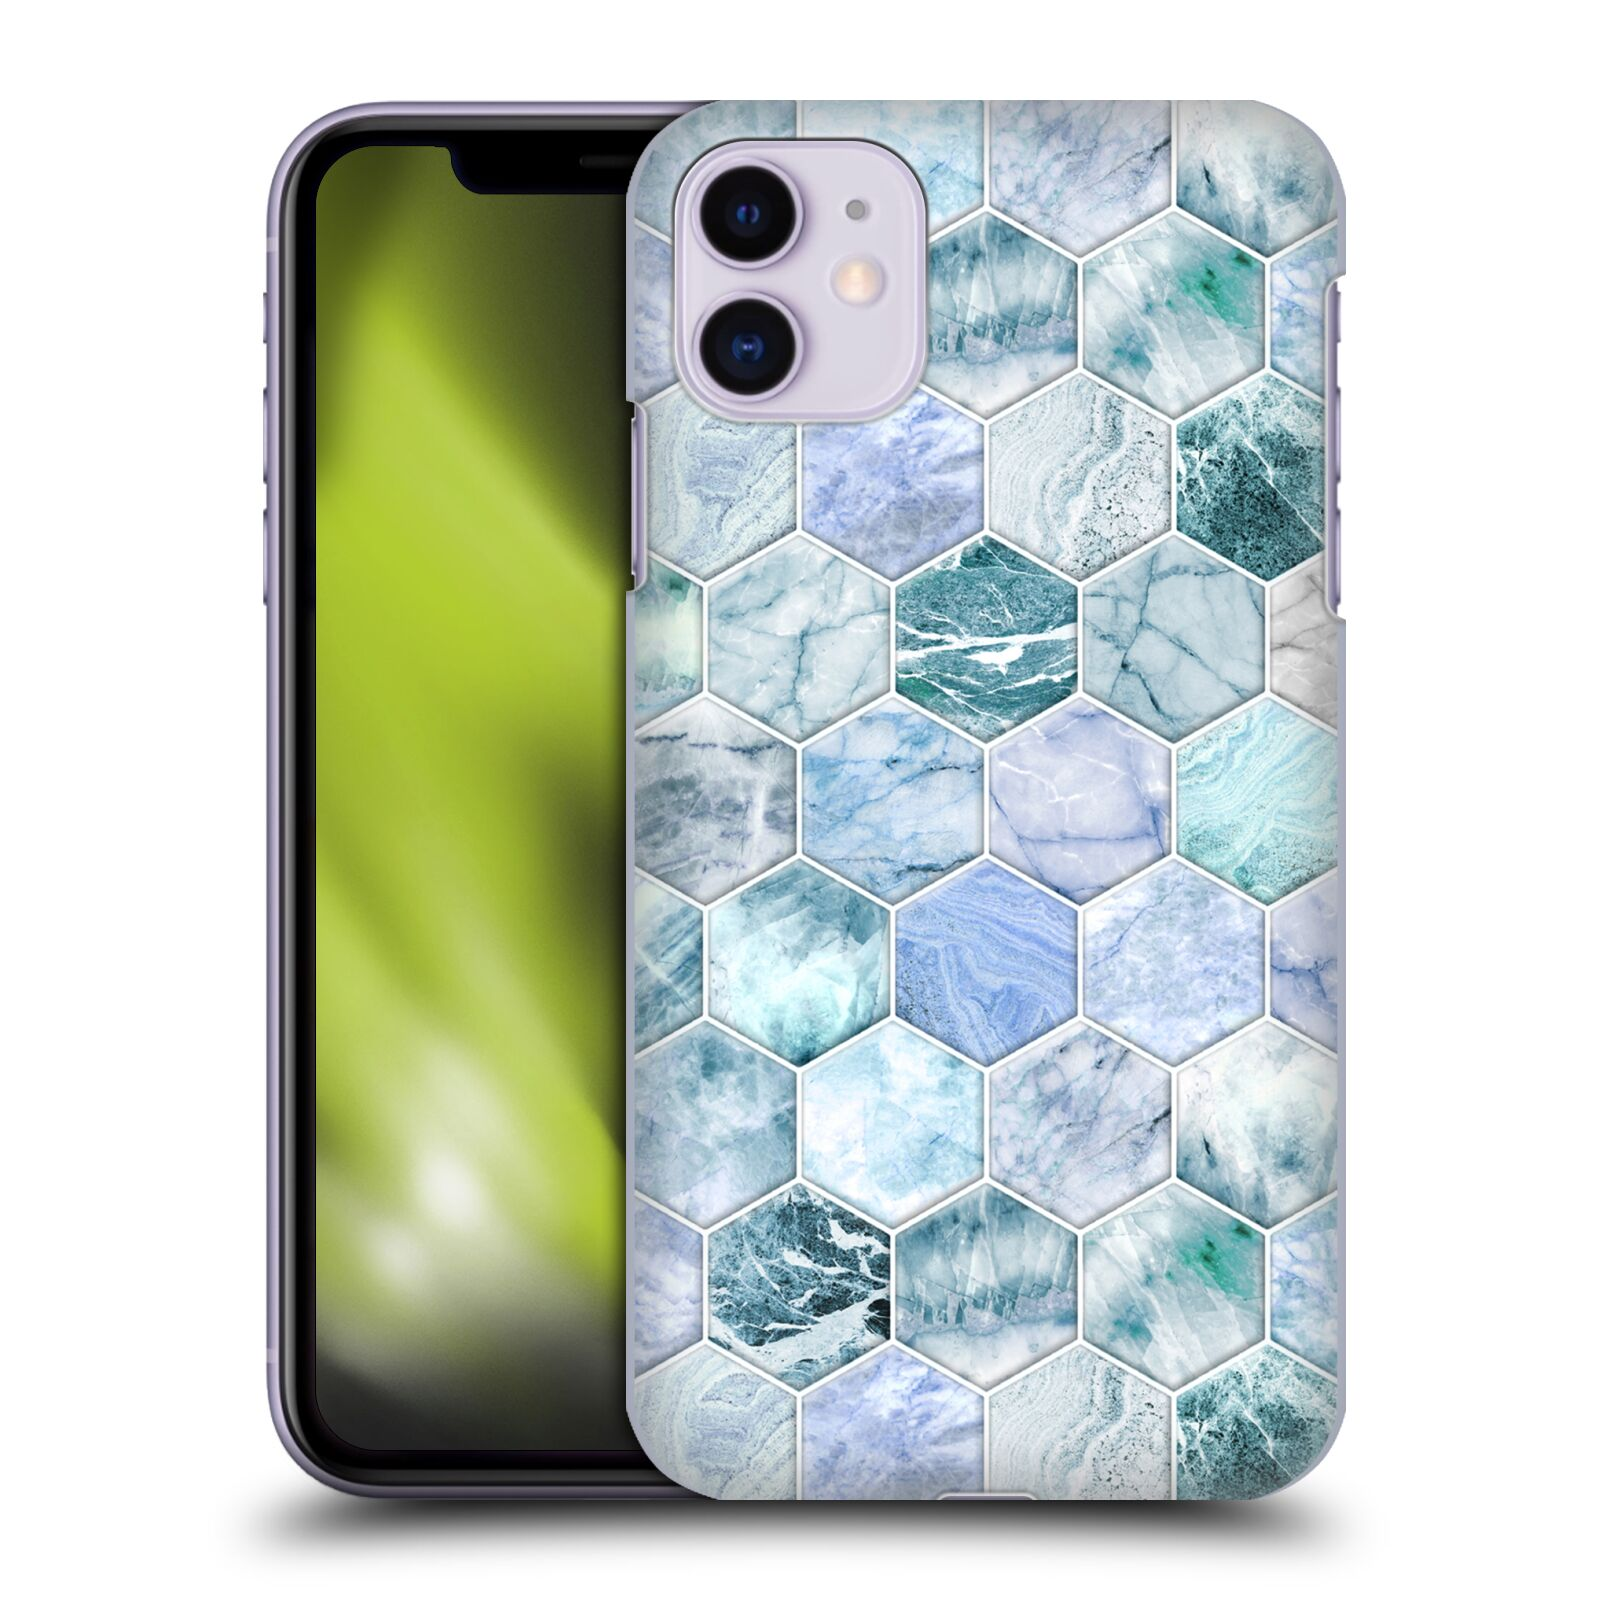 Official Micklyn Le Feuvre Marble Patterns Ice Blue And Jade Stone And Hexagon Tiles Case for Apple iPhone 11